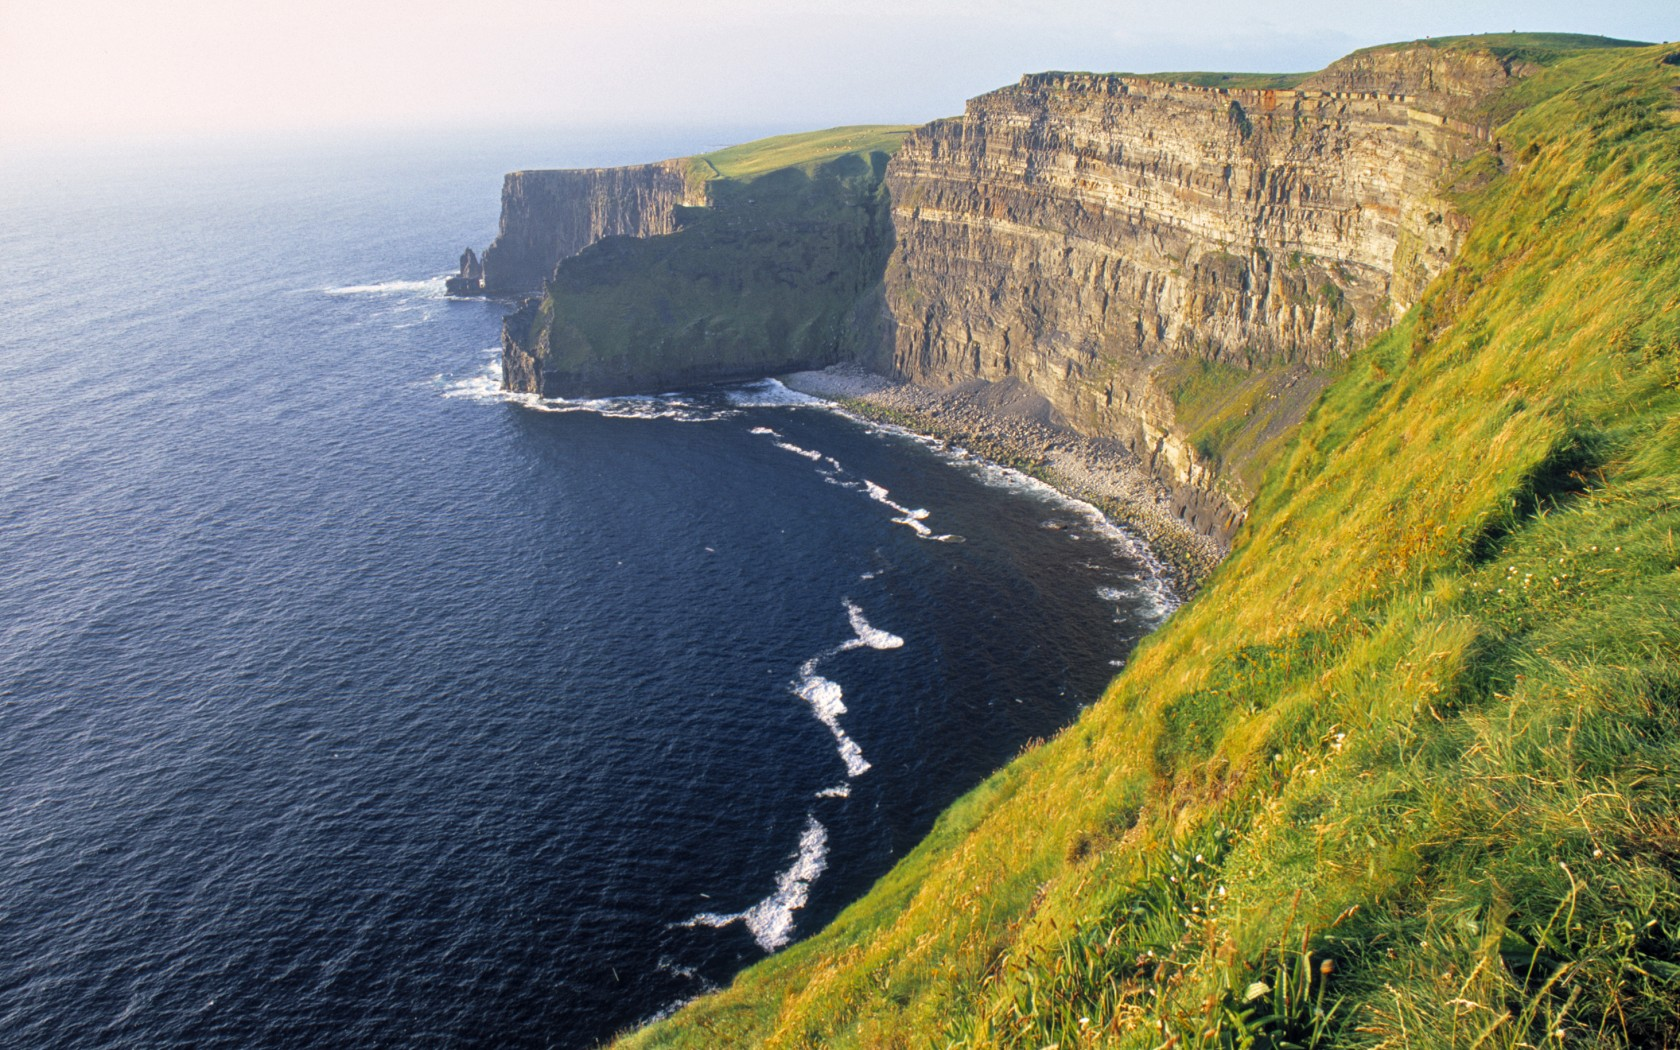 resized-AWL_IE02136CliffsofMoher-1680x1050